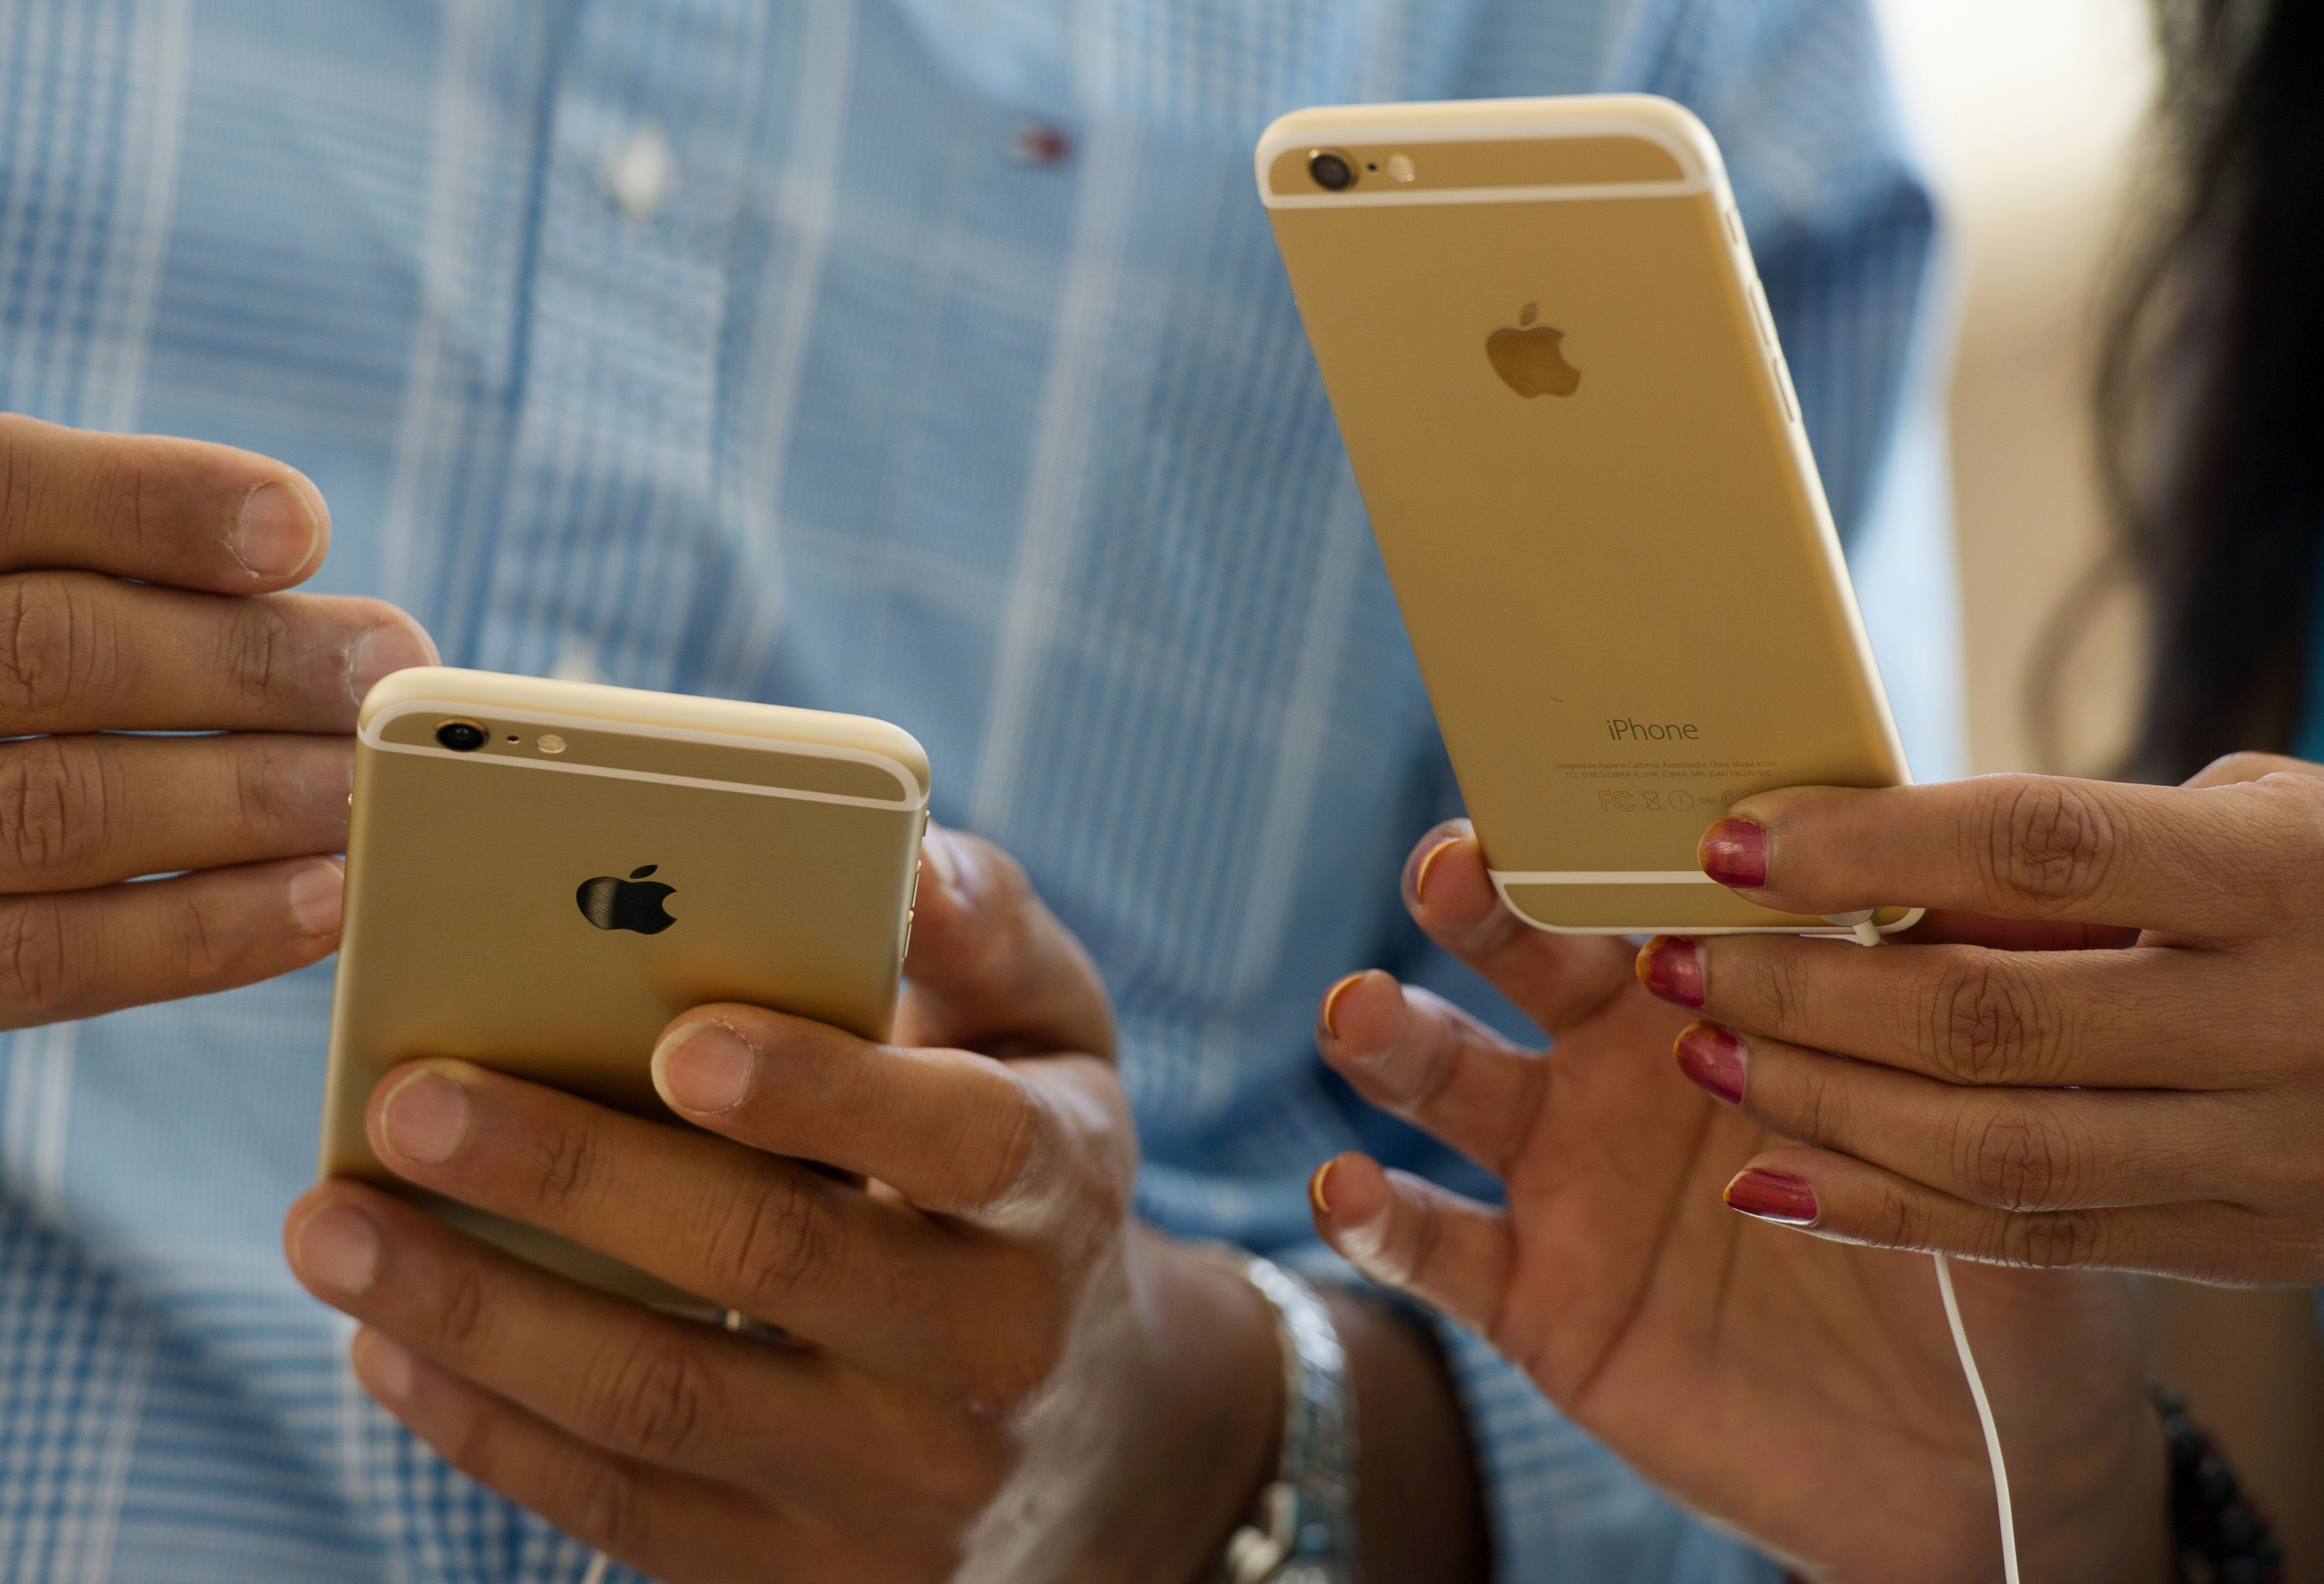 Customers compare an Apple Inc. iPhone 6, left, and iPhone 6 plus during the sales launch at an Apple store in Palo Alto, California, U.S., on Friday, Sept. 19, 2014.